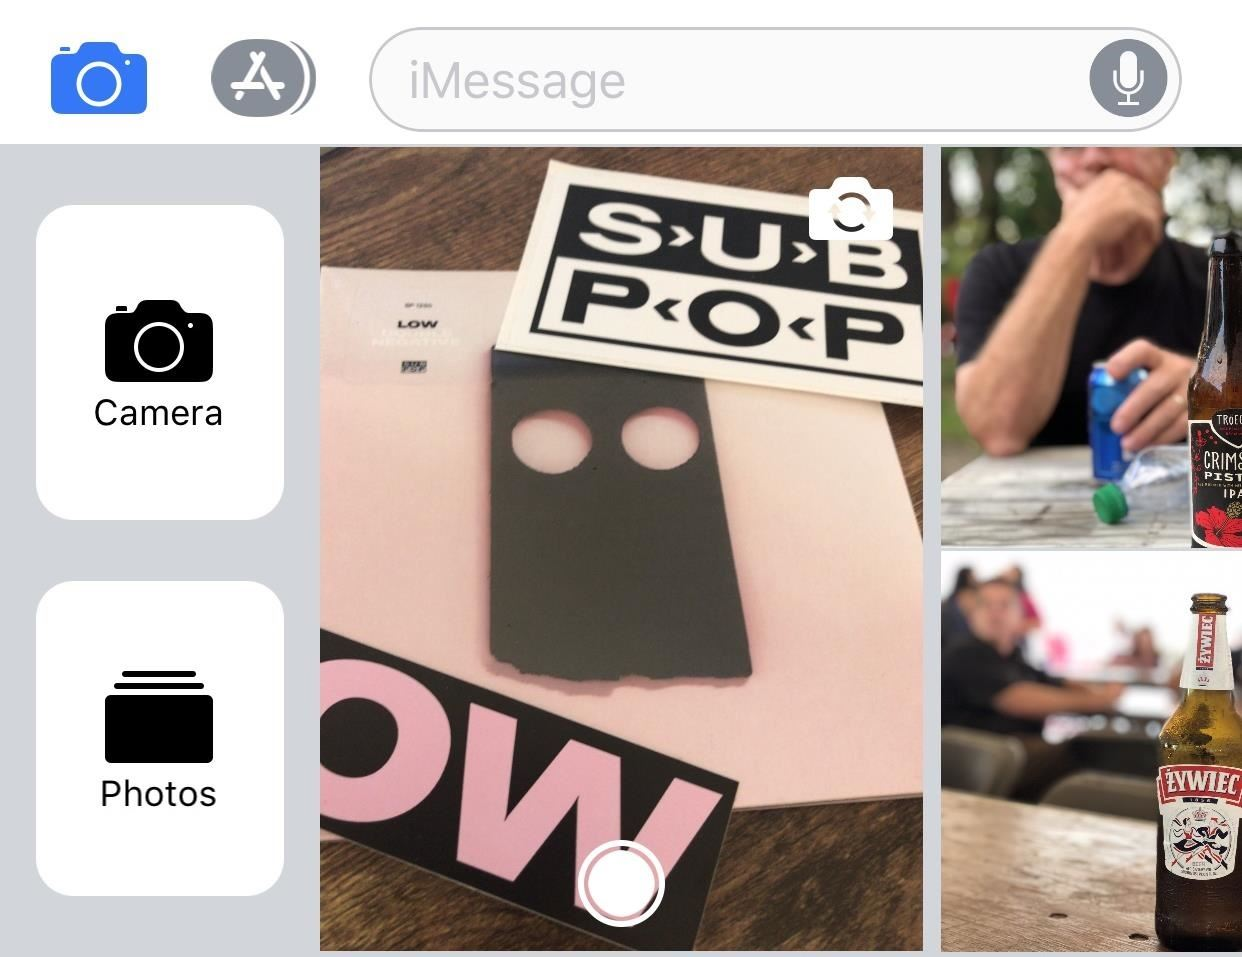 Sending Photos in Messages Just Got Way More Annoying in iOS 12